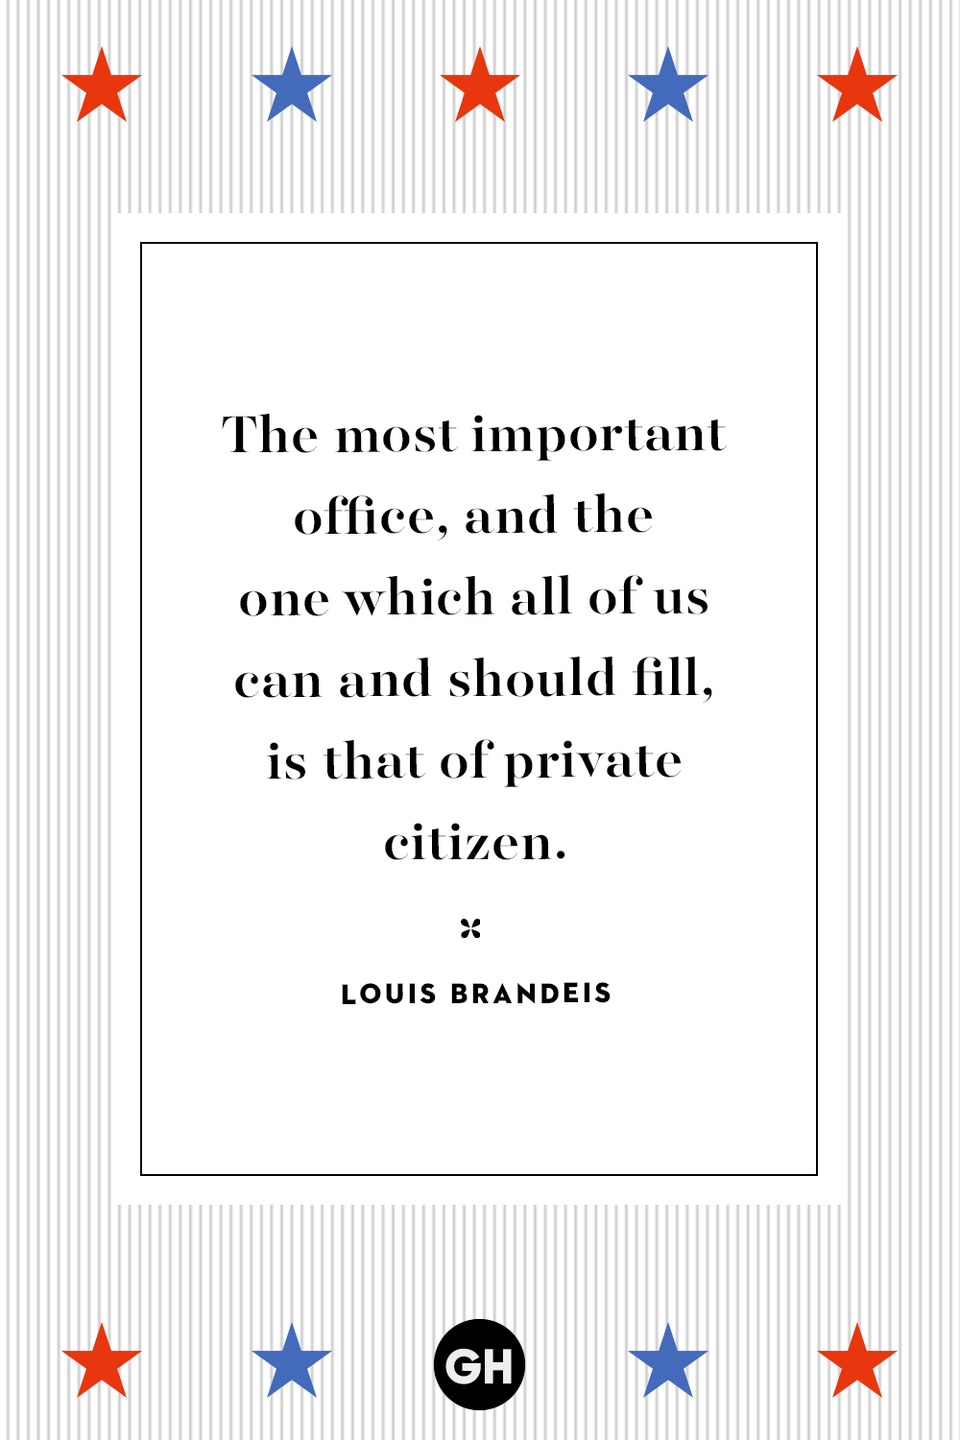 <p>The most important office, and the one which all of us can and should fill, is that of private citizen.</p>